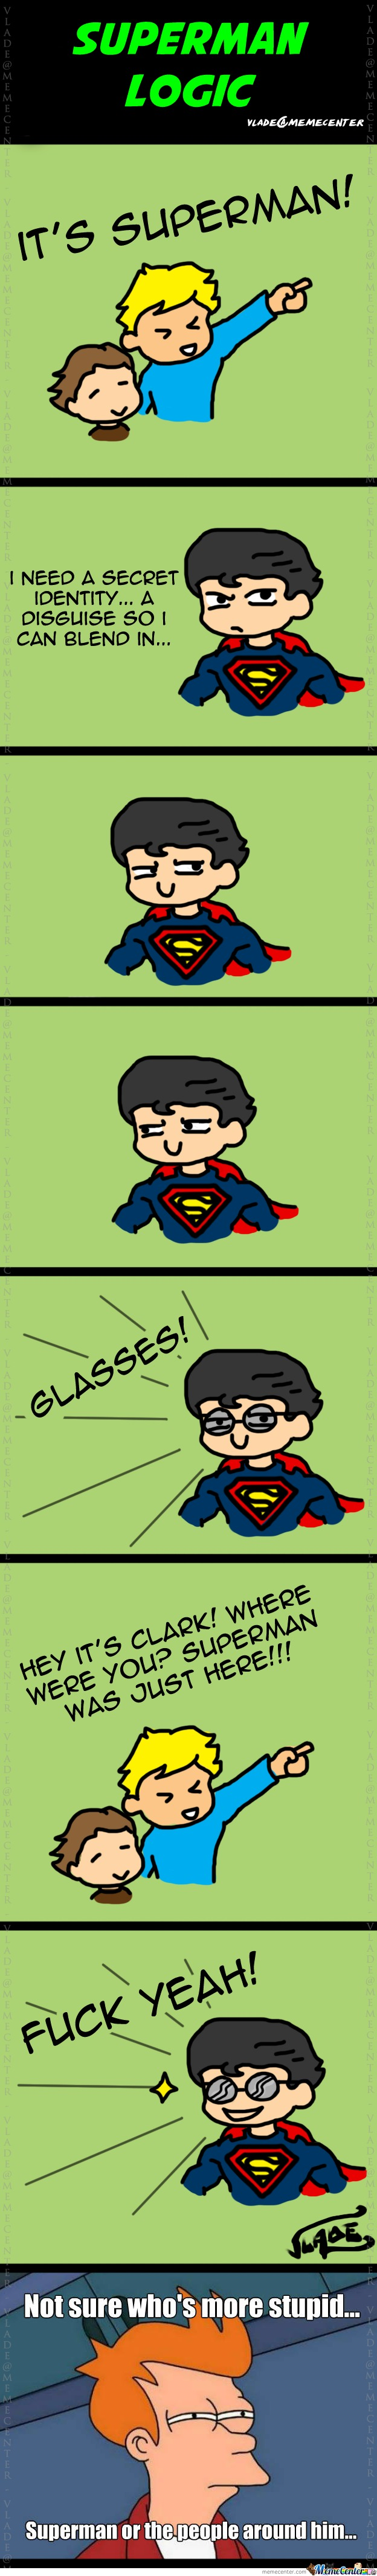 Superman Logic